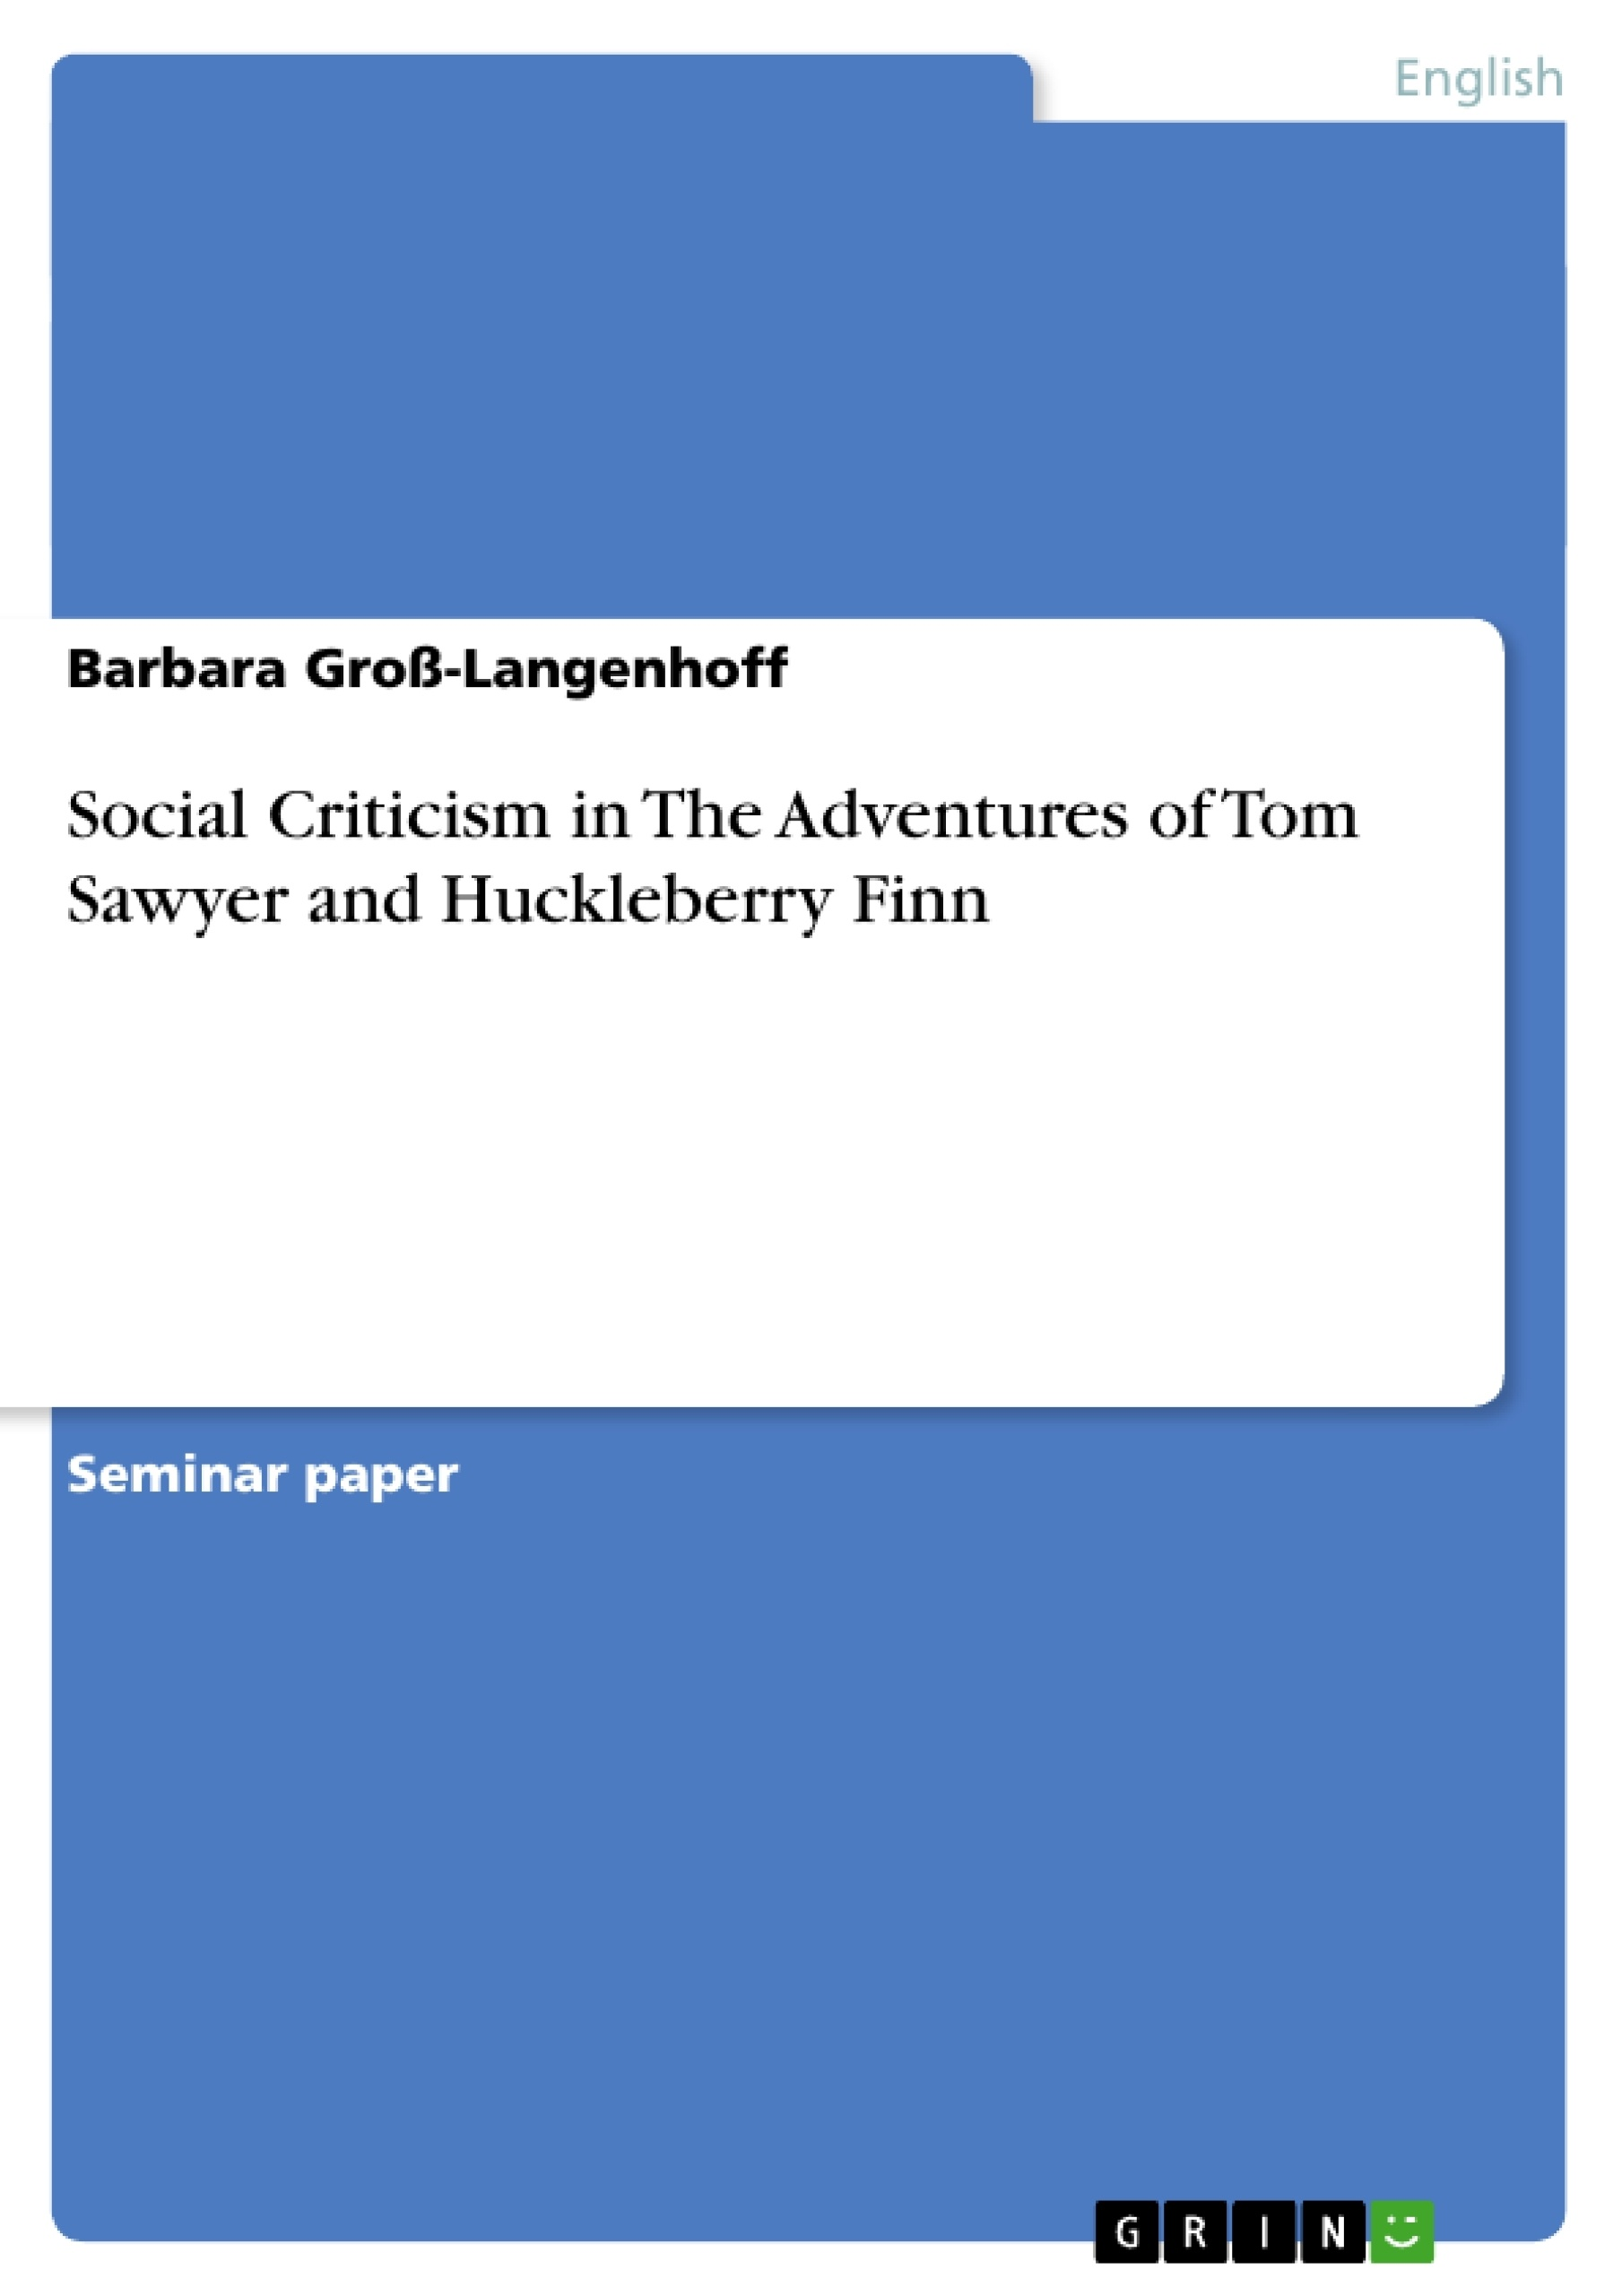 social criticism in the adventures of tom sawyer and huckleberry  upload your own papers earn money and win an iphone x